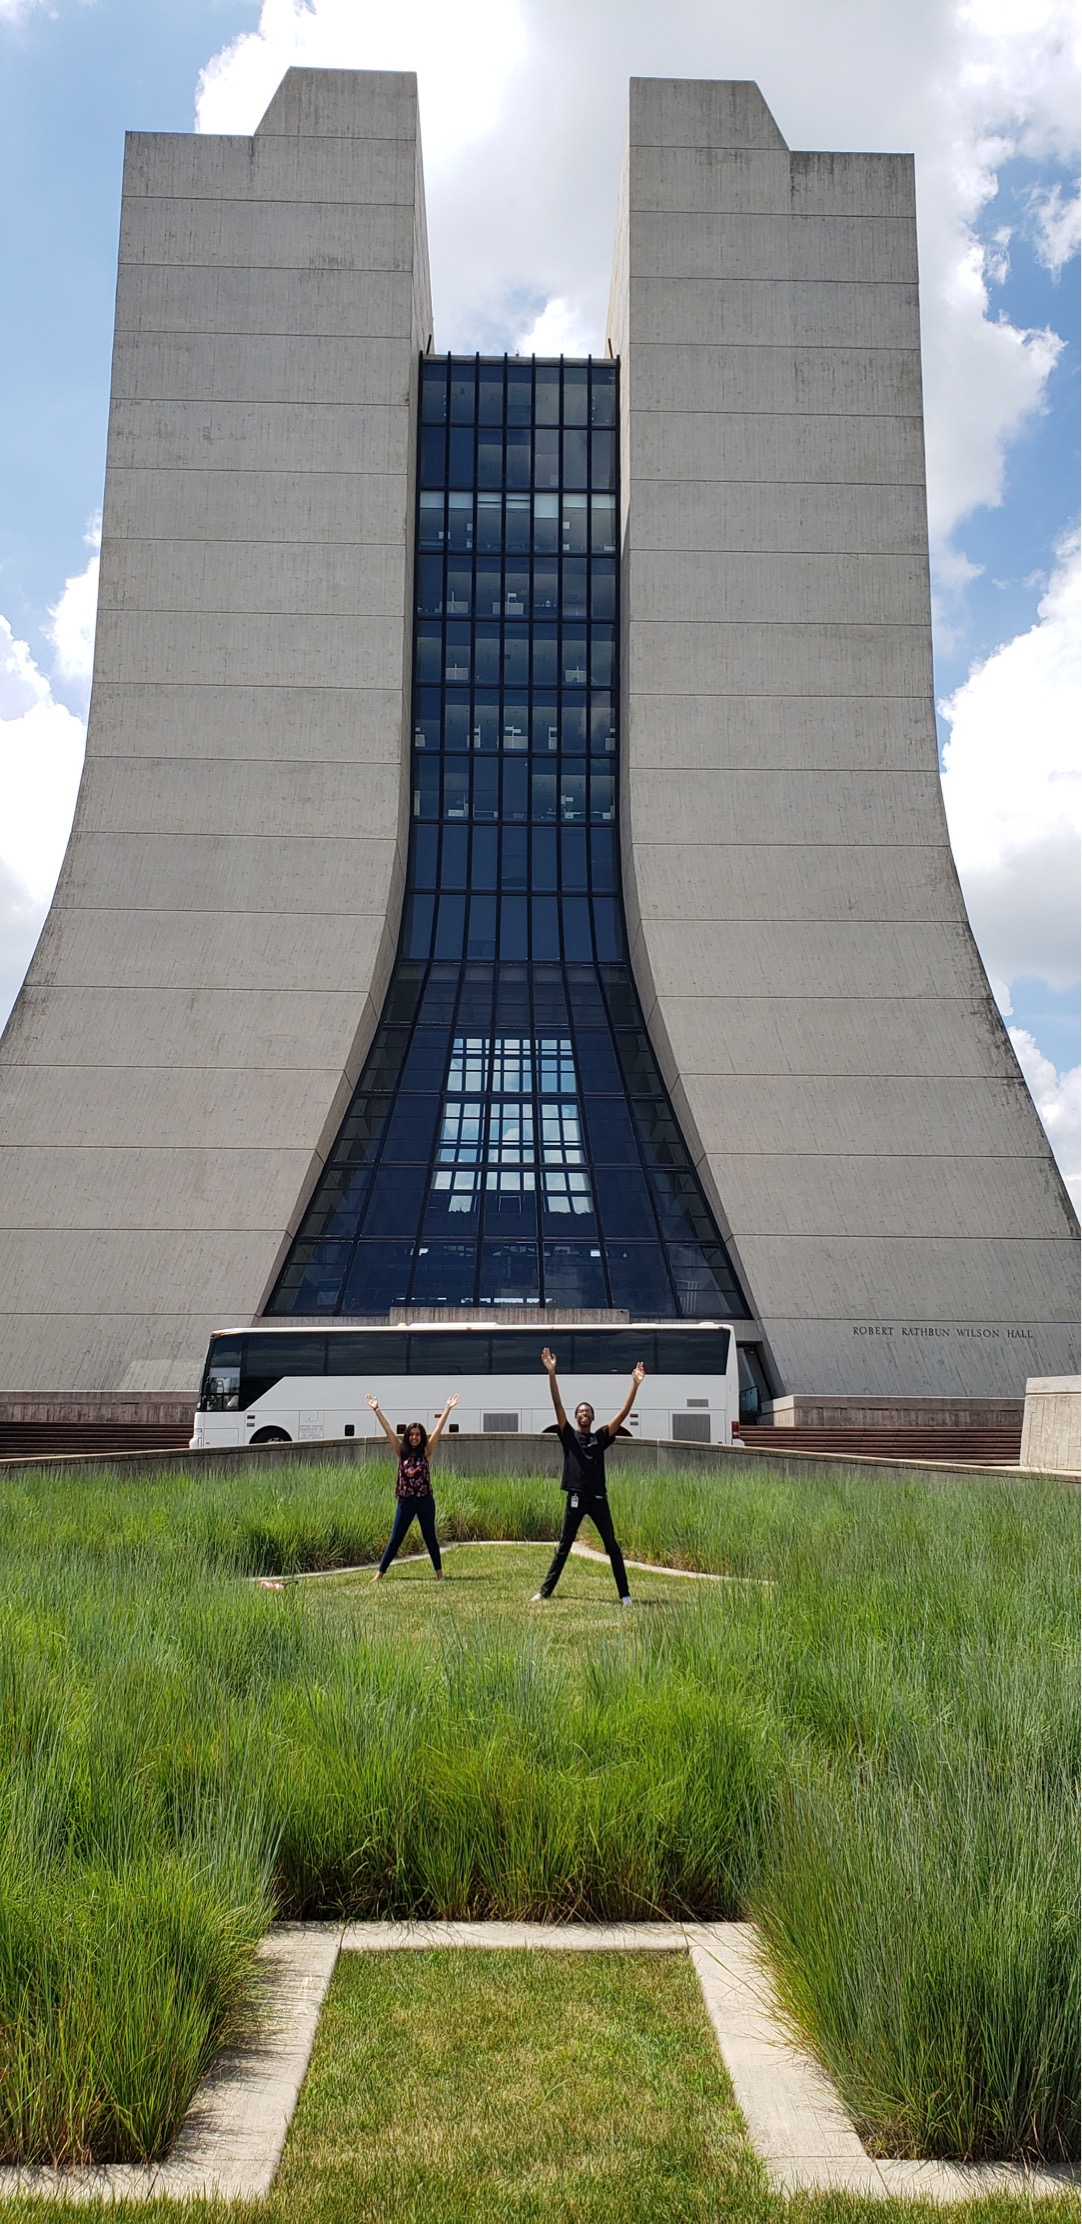 TARGET interns Malachi Clark and Deeya Wadhwani enjoy their final days at Fermilab. This photo was taken on July 18. people Photo: Xavier Velez